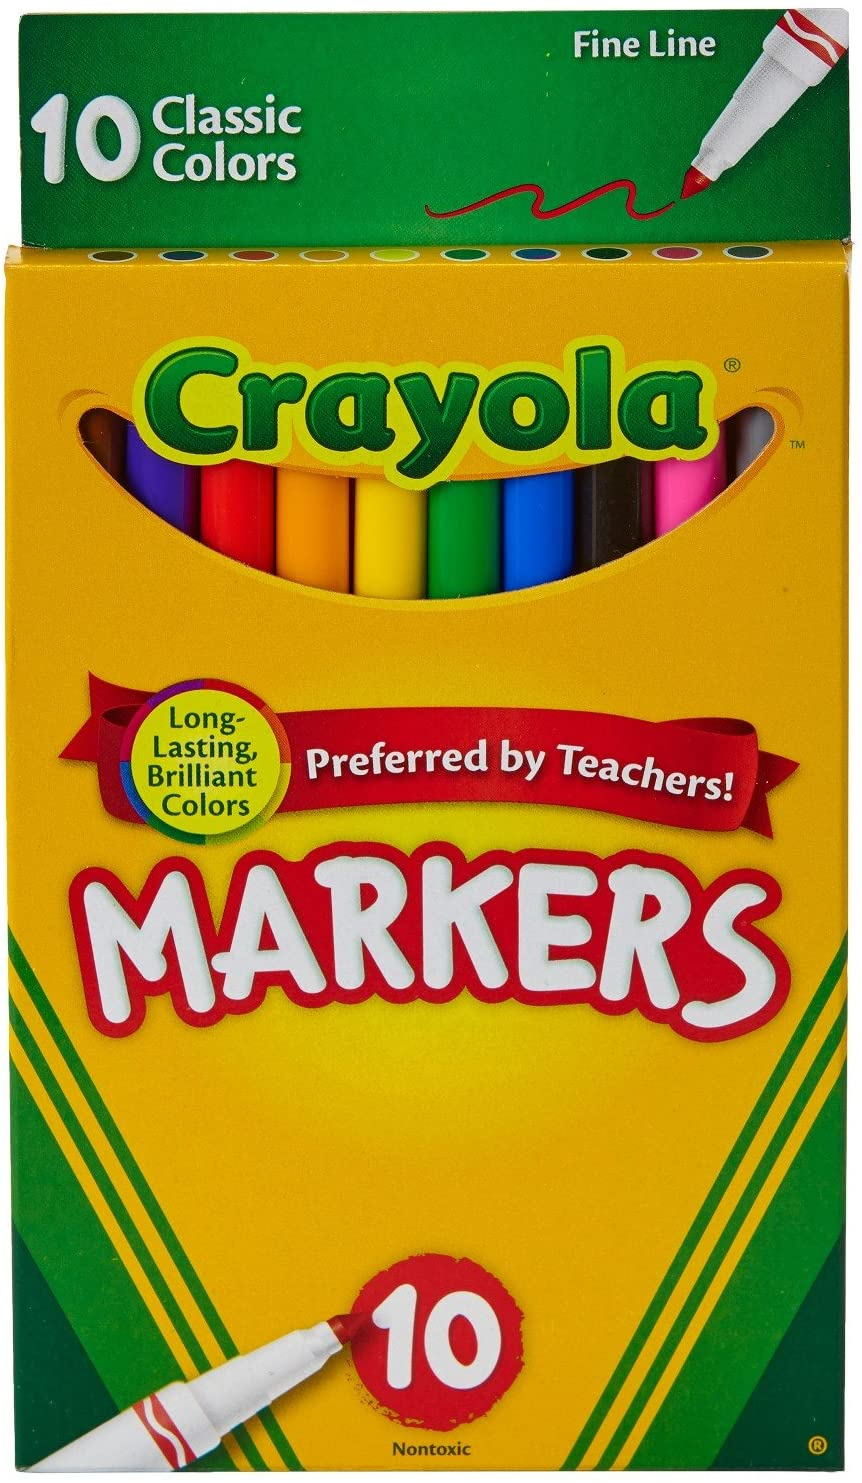 Crayola Fine Line Markers, Assorted Classic 10Ct - Pack of 1